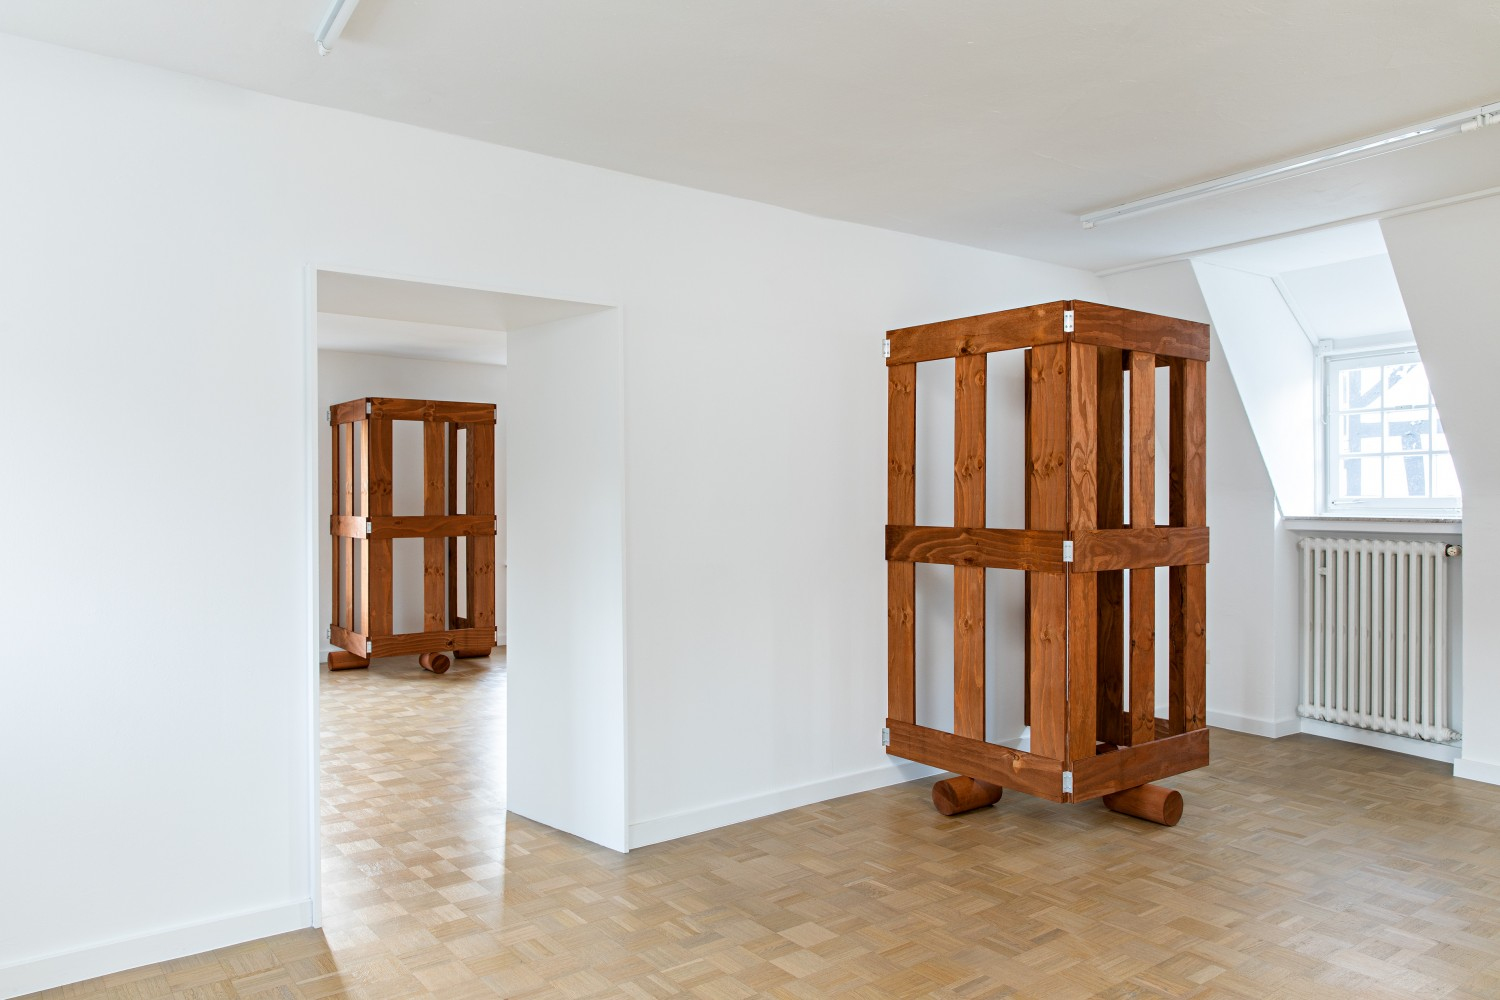 Wooden gates were also installed on the upper floor. One in the front room and two in the back, with only the frontmost and the rearmost visible in the exhibition view. In general, no more than two gates can be seen at any one time.